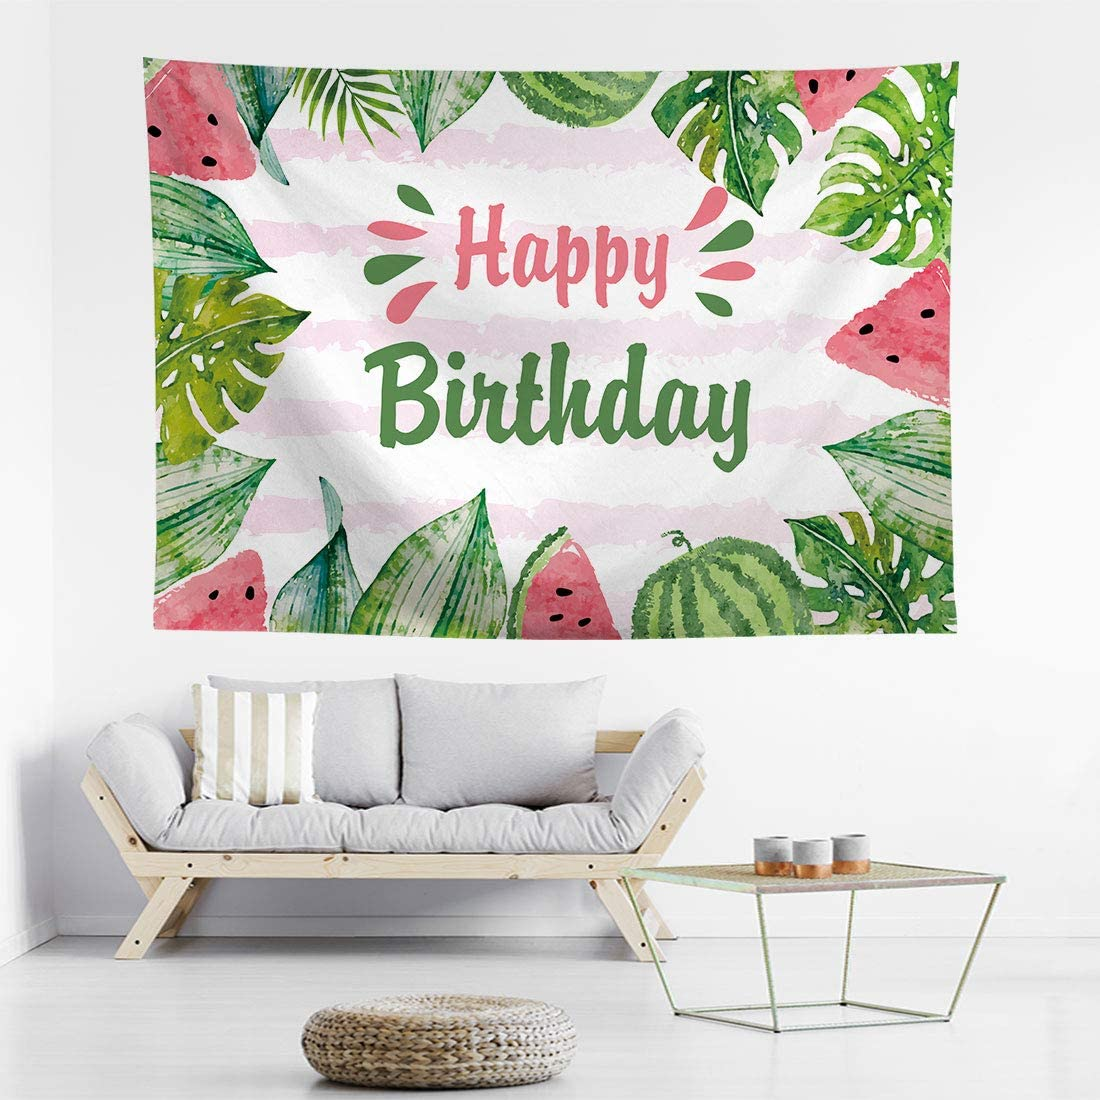 Allenjoy Watermelon Summer Happy Birthday Backdrops Kids Girl One in a Melon 1st Bday Party Table Banner Decorations Infant Newborn Portrait Photo Booth Props 7X5ft Photoshoot Background for Pictures